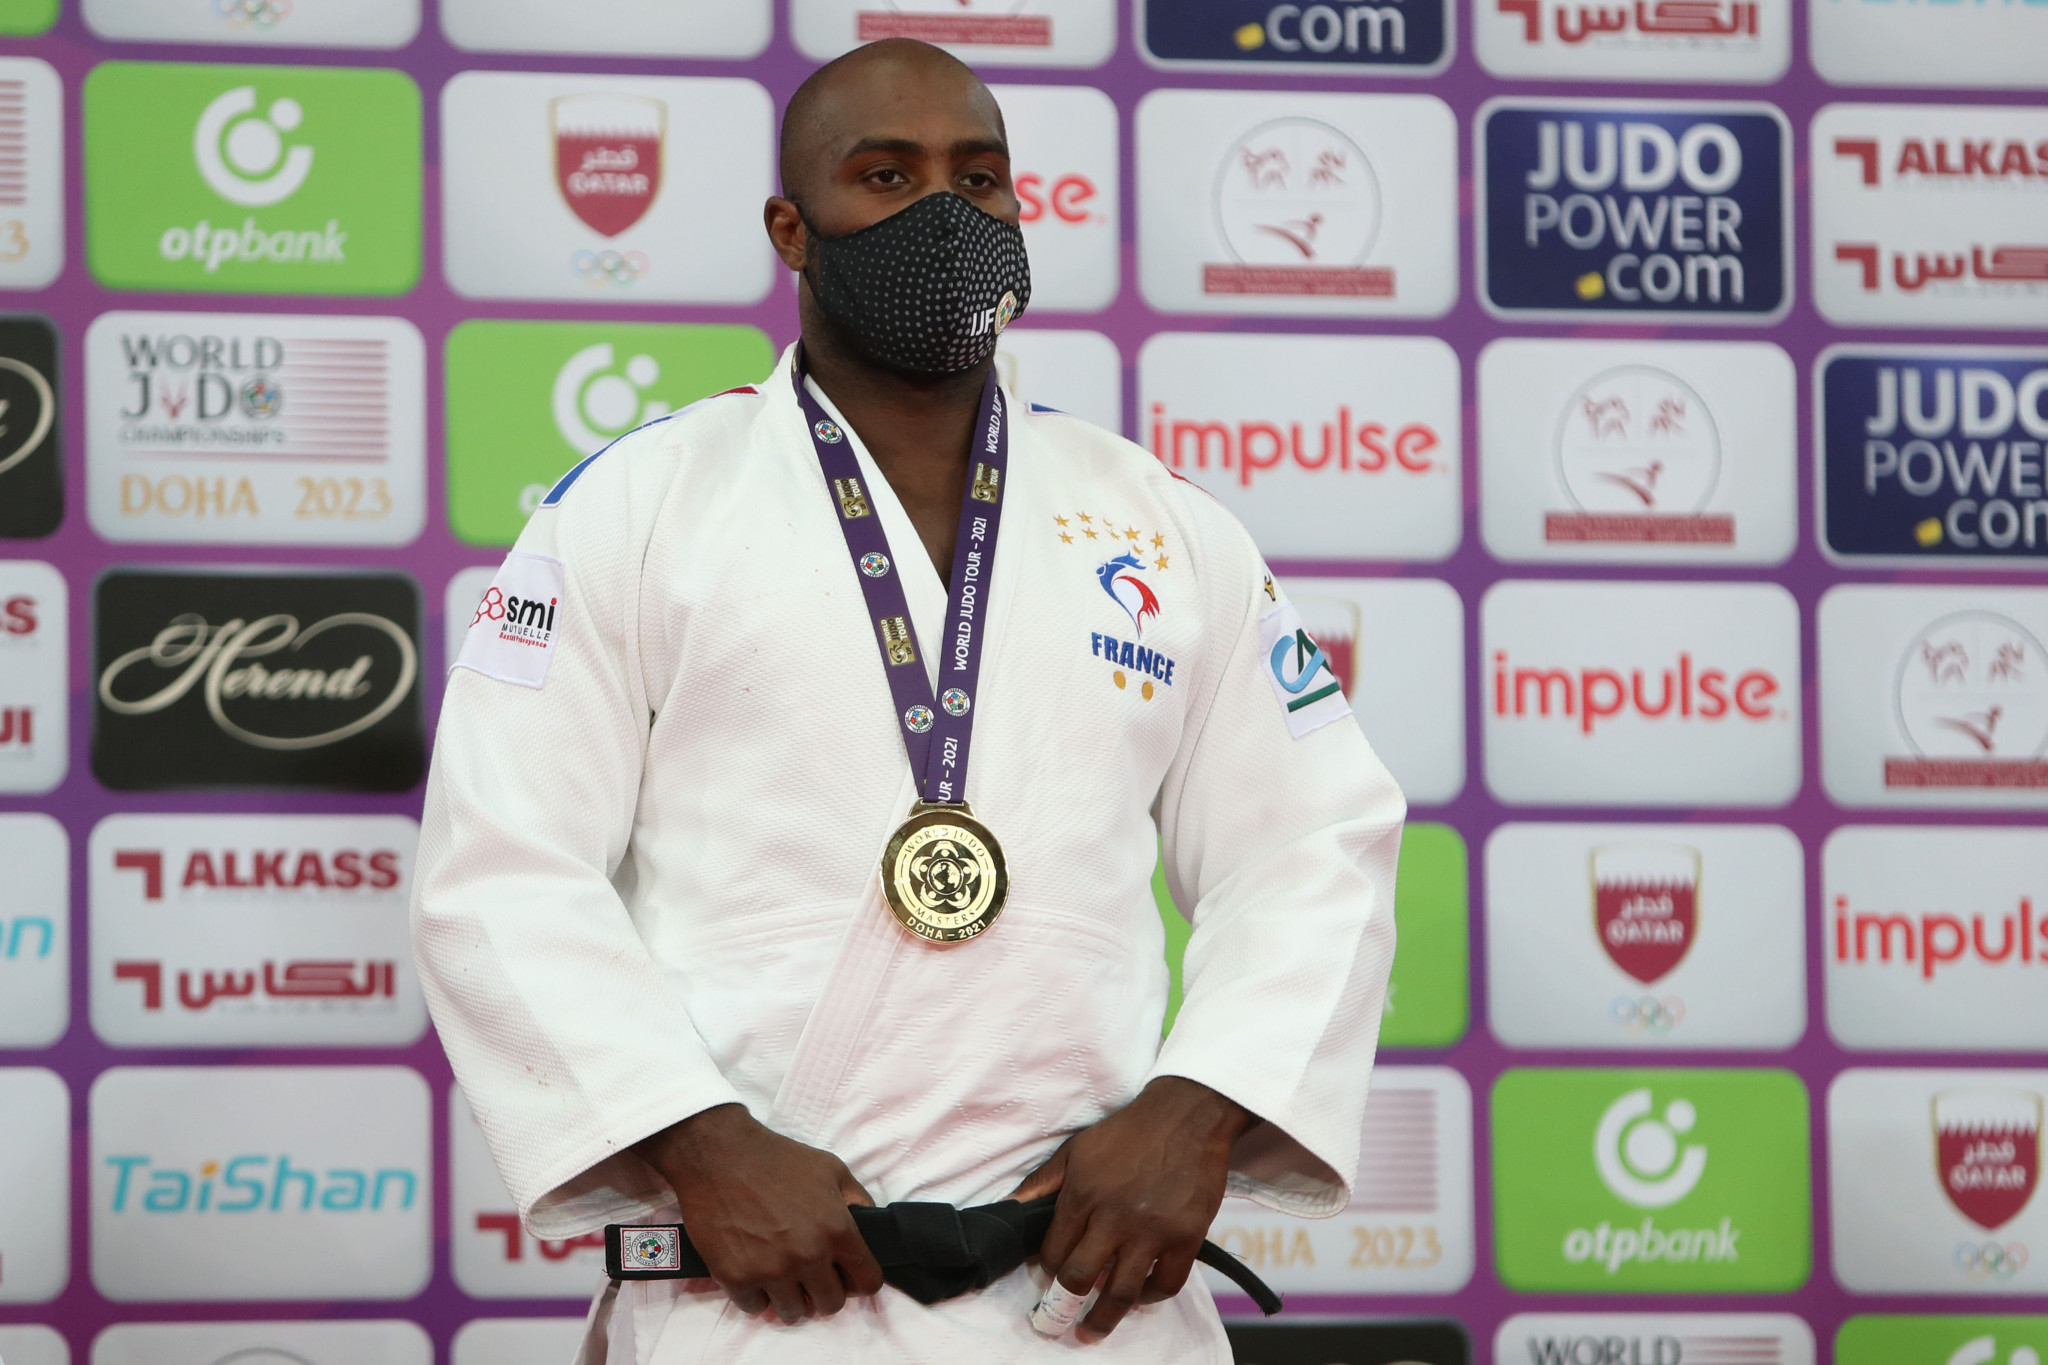 Riner brings IJF World Judo Masters to conclusion with heavyweight gold medal